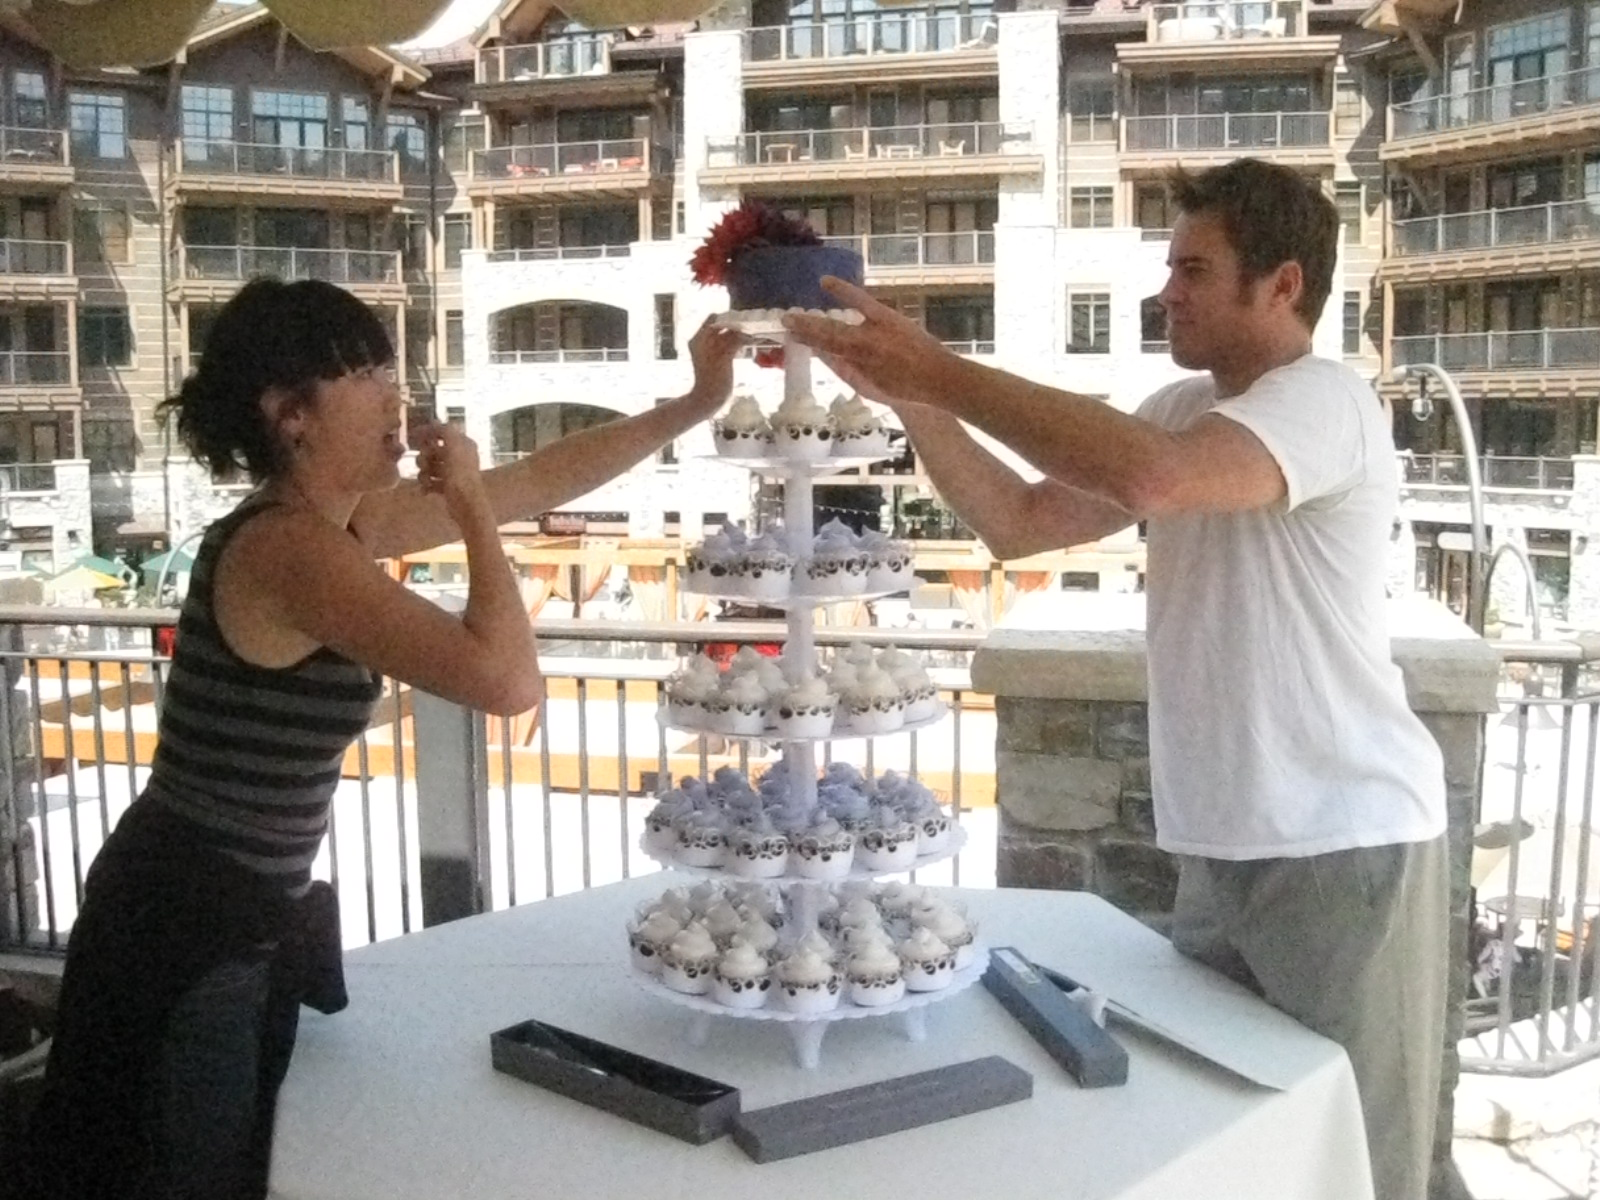 Grace and her husband assembling the tower at the reception location.